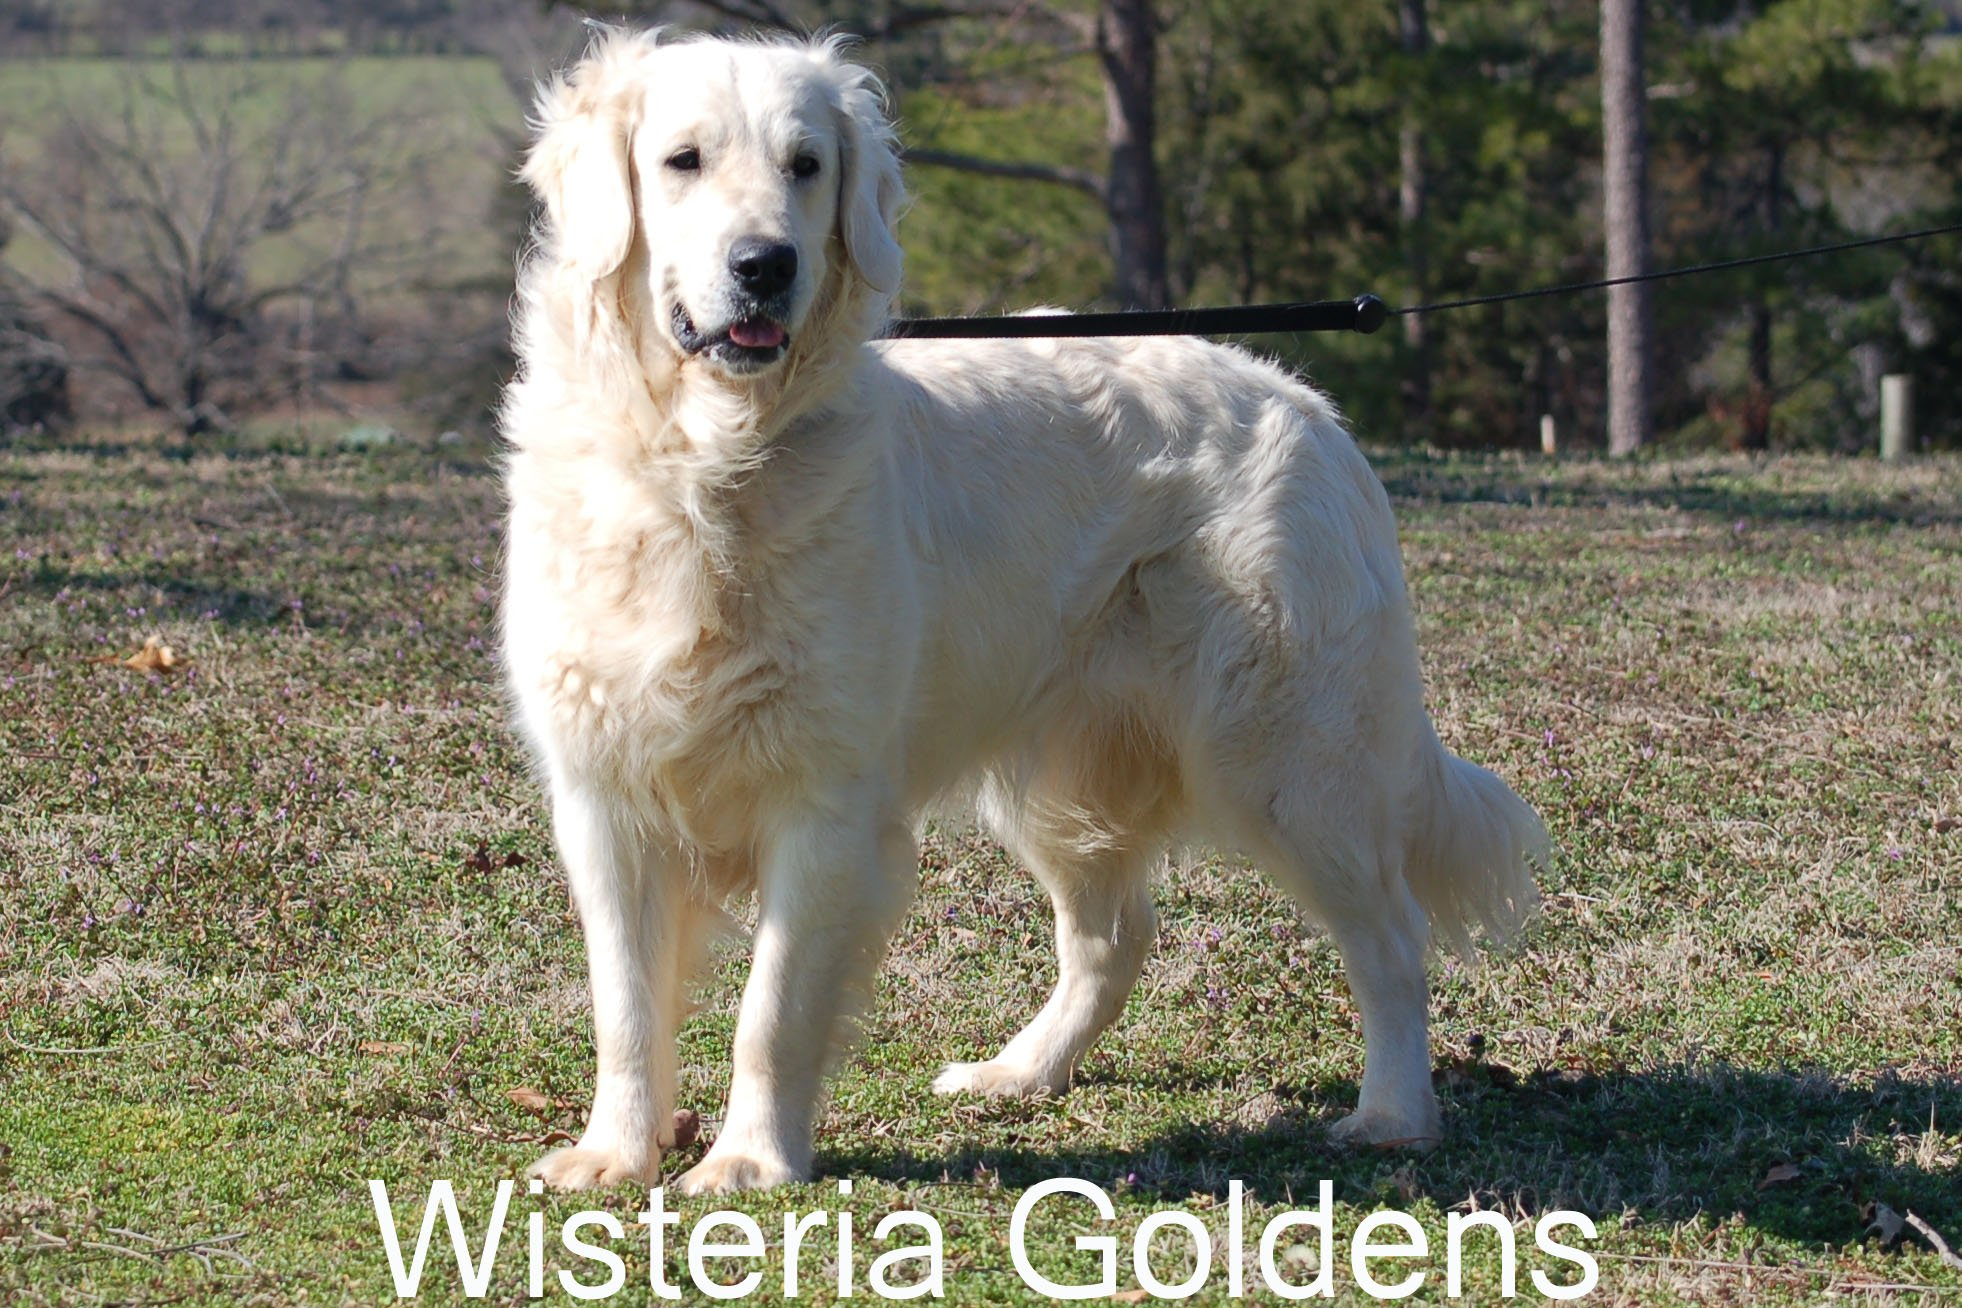 Tru_0512-Tru-full-english-cream-golden-retriever-wisteria-goldens.JPG